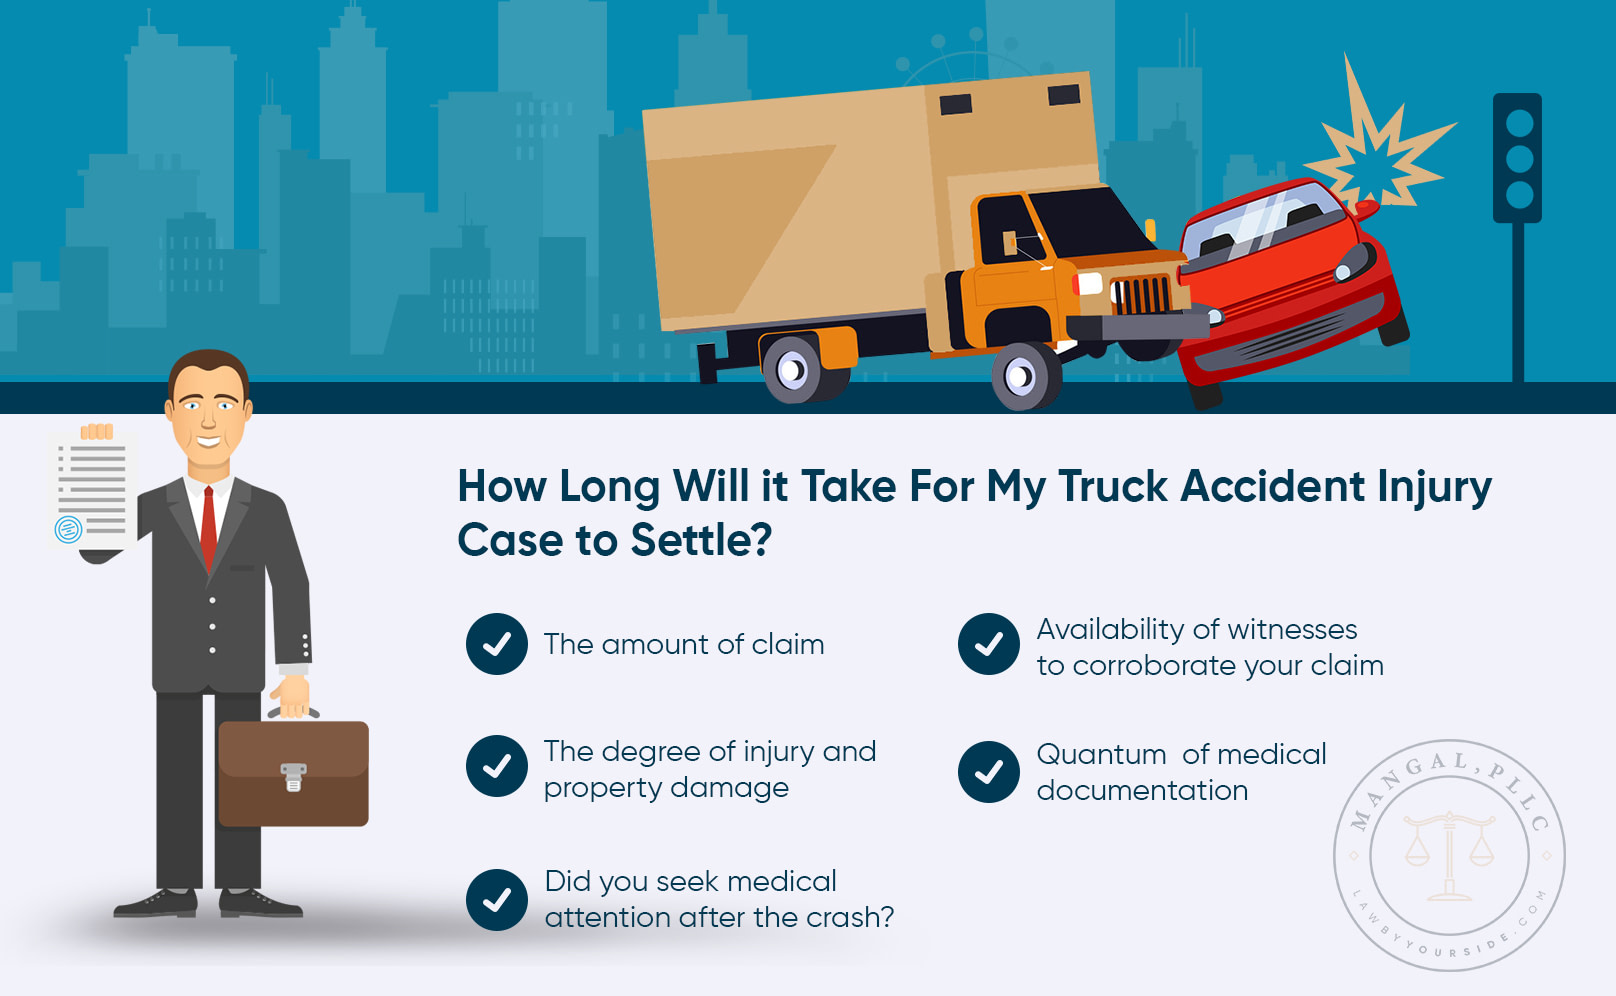 Truck-Accident-Injury-Case-to-Settle